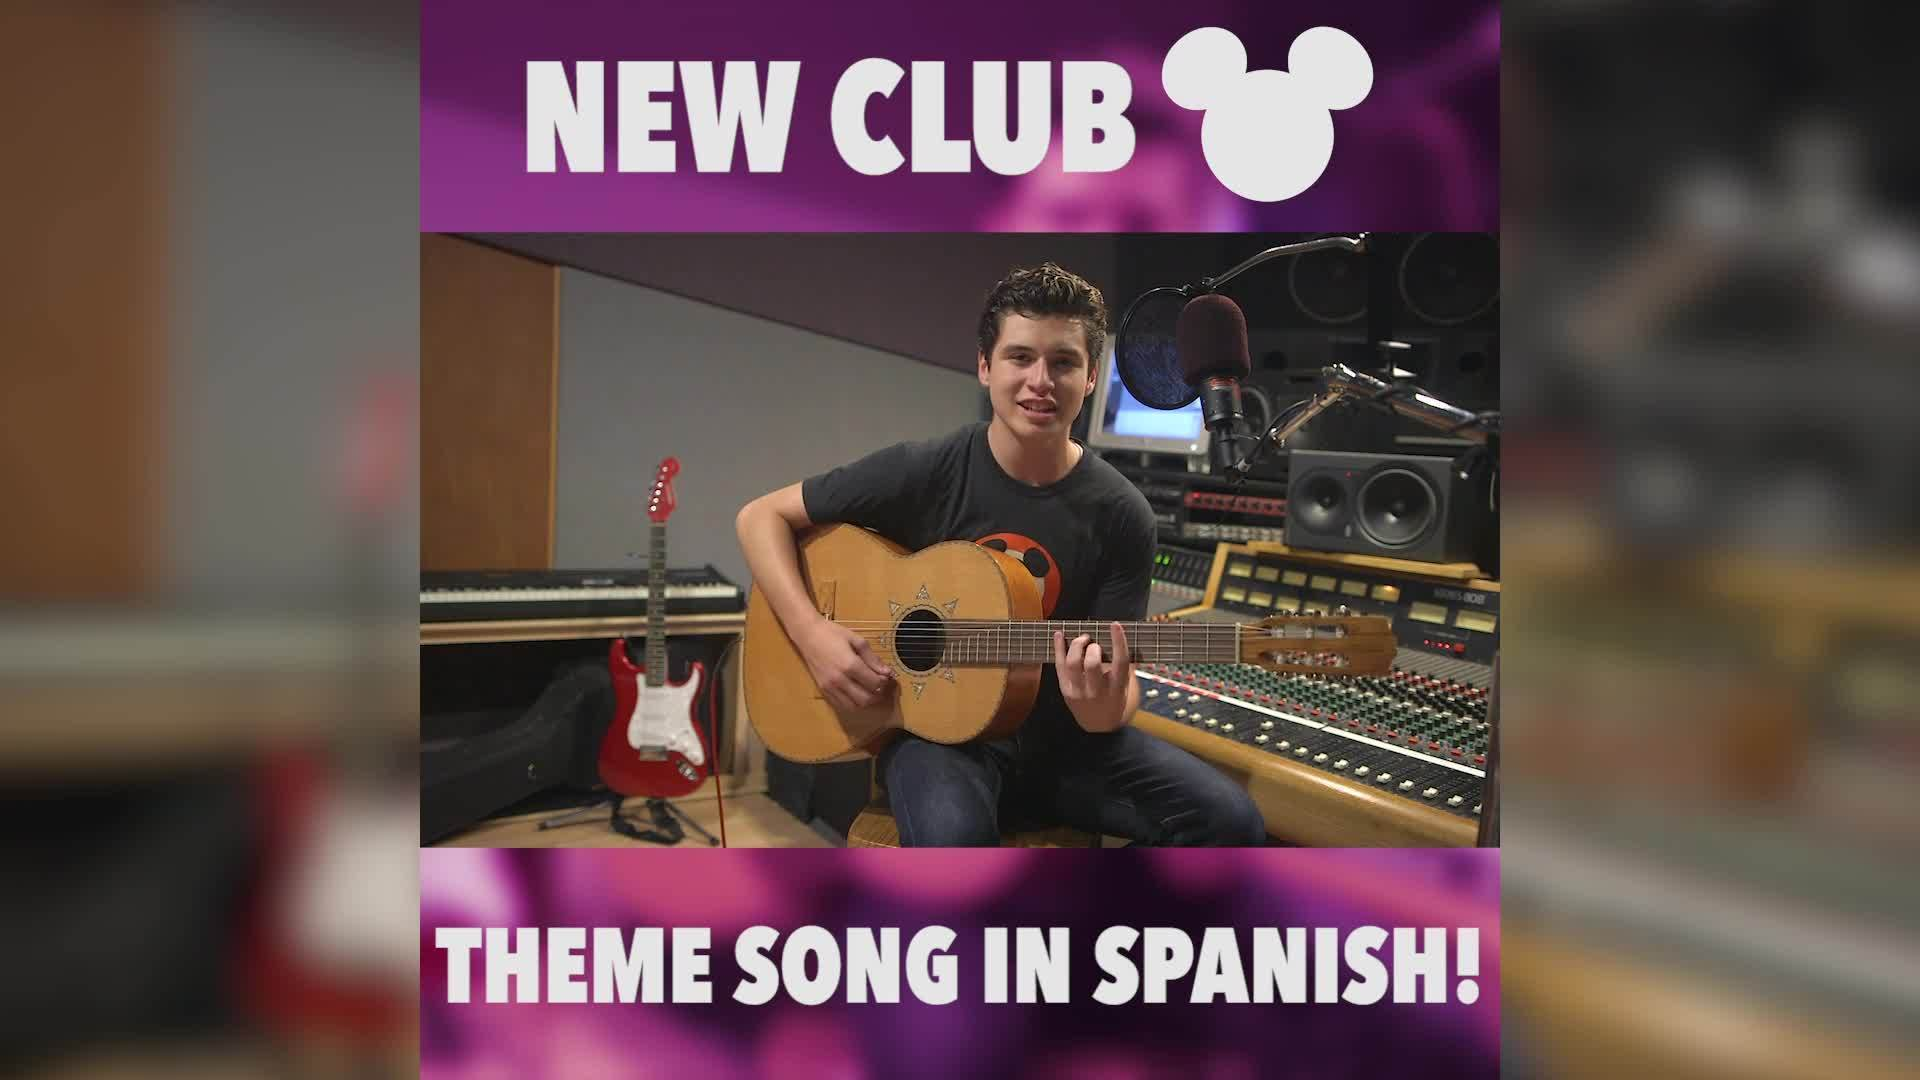 Club Mickey Mouse Theme Song in Spanish